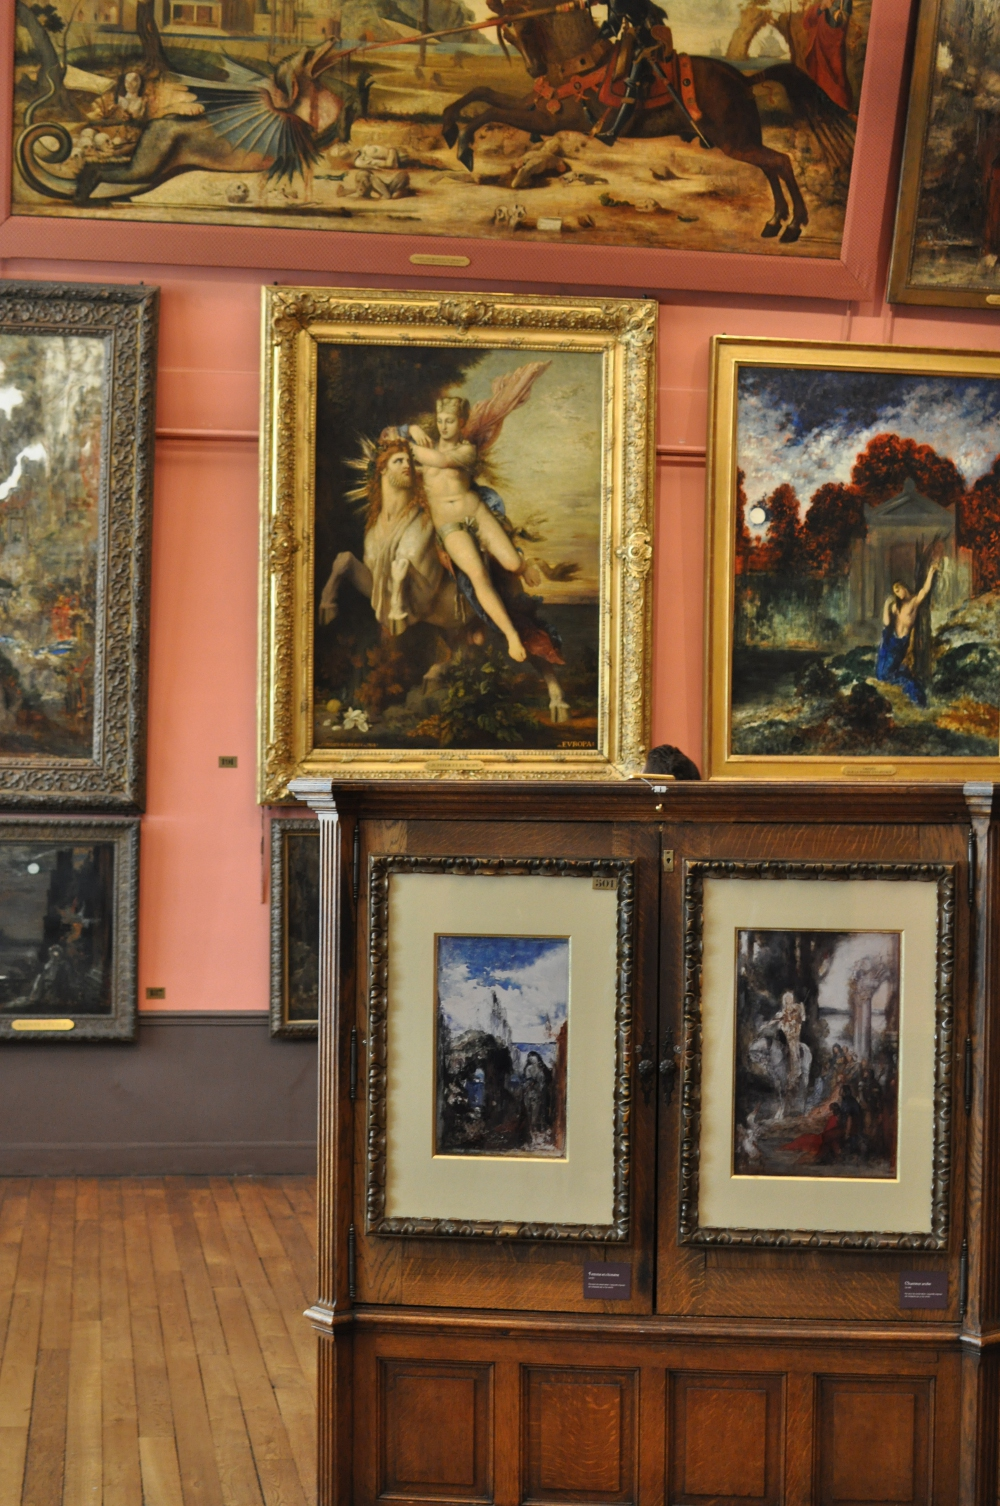 rocaille-blog-paris-november-gustave-moreau-museum-house-painter-symbolism (38)